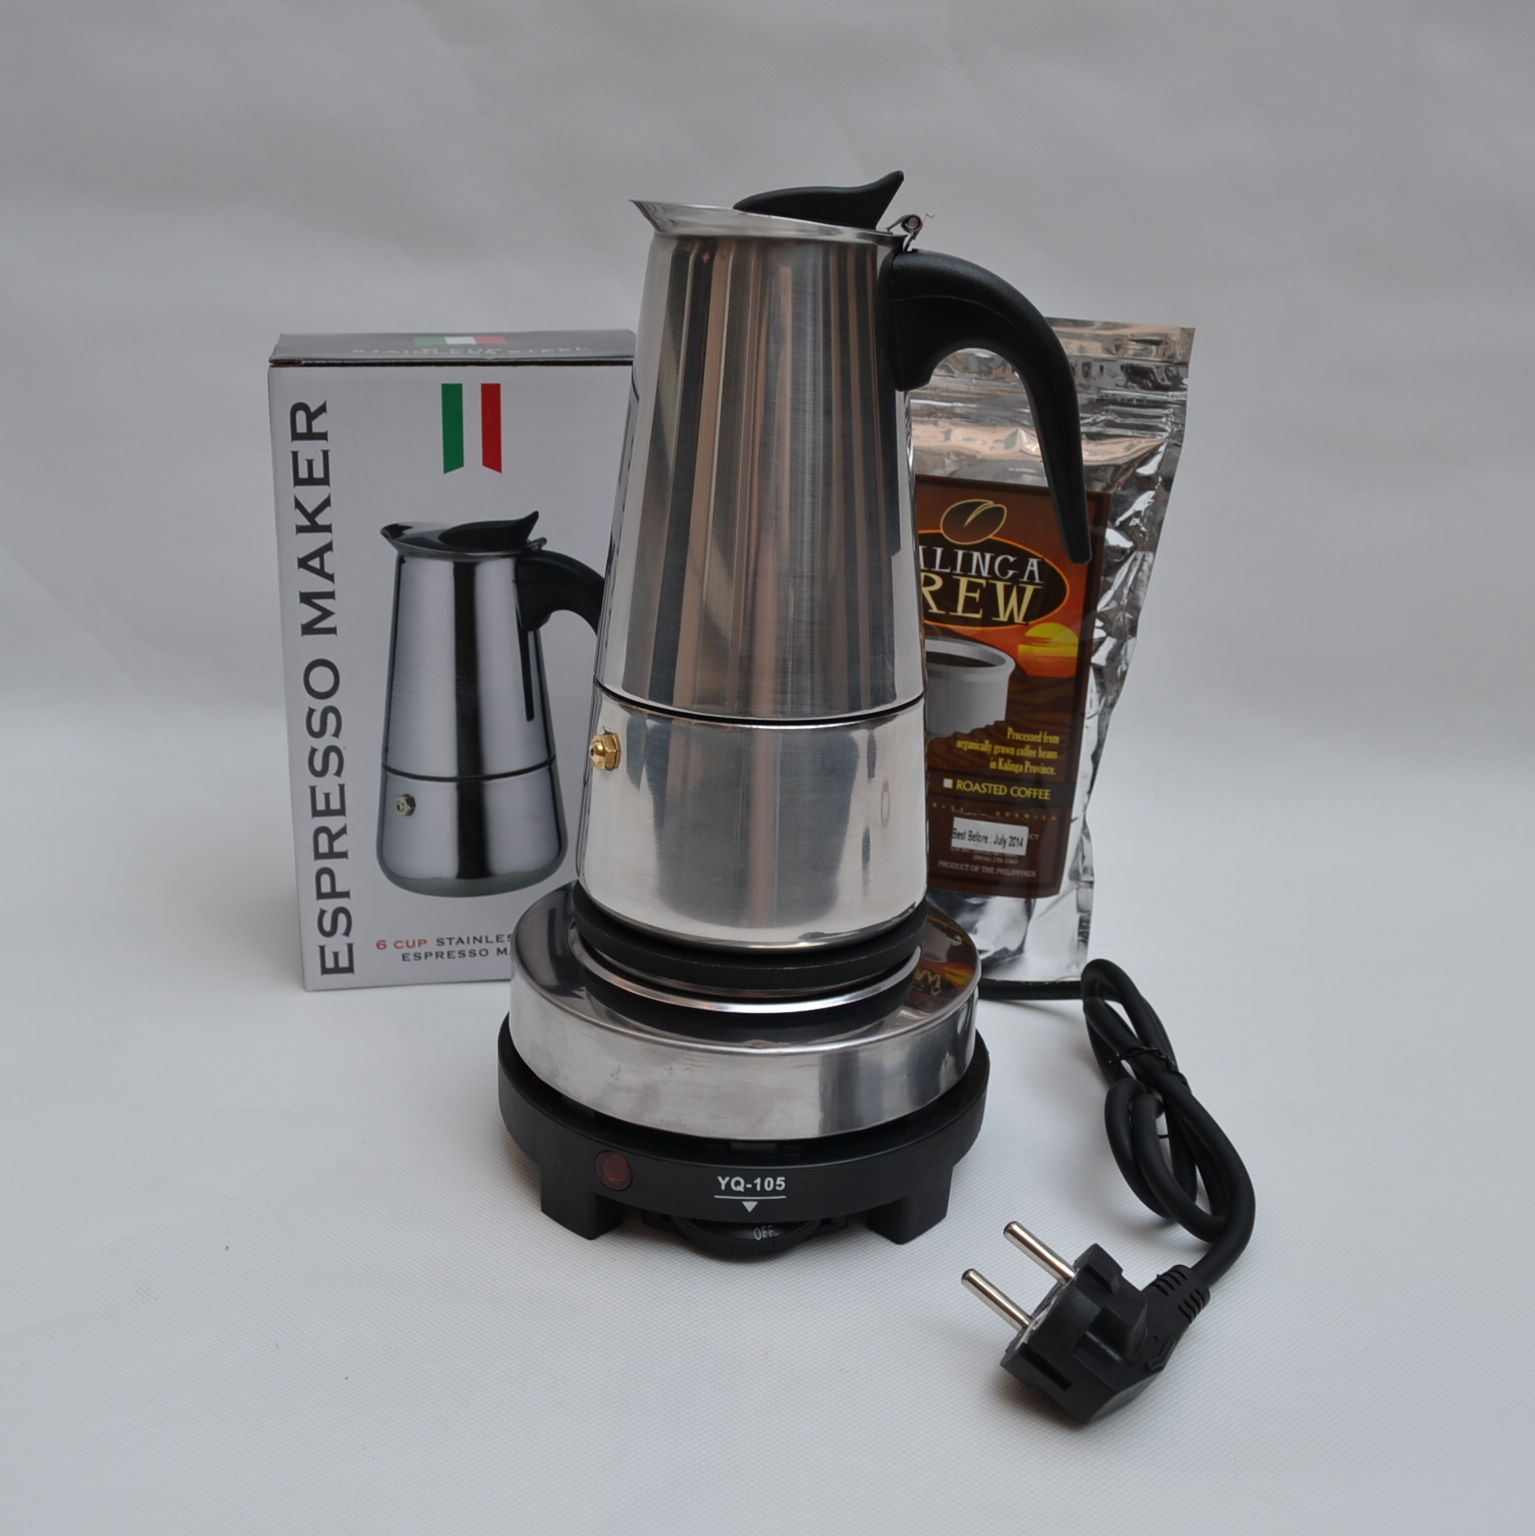 Coffee Maker With Metal Parts : Image Gallery italian espresso machines electric